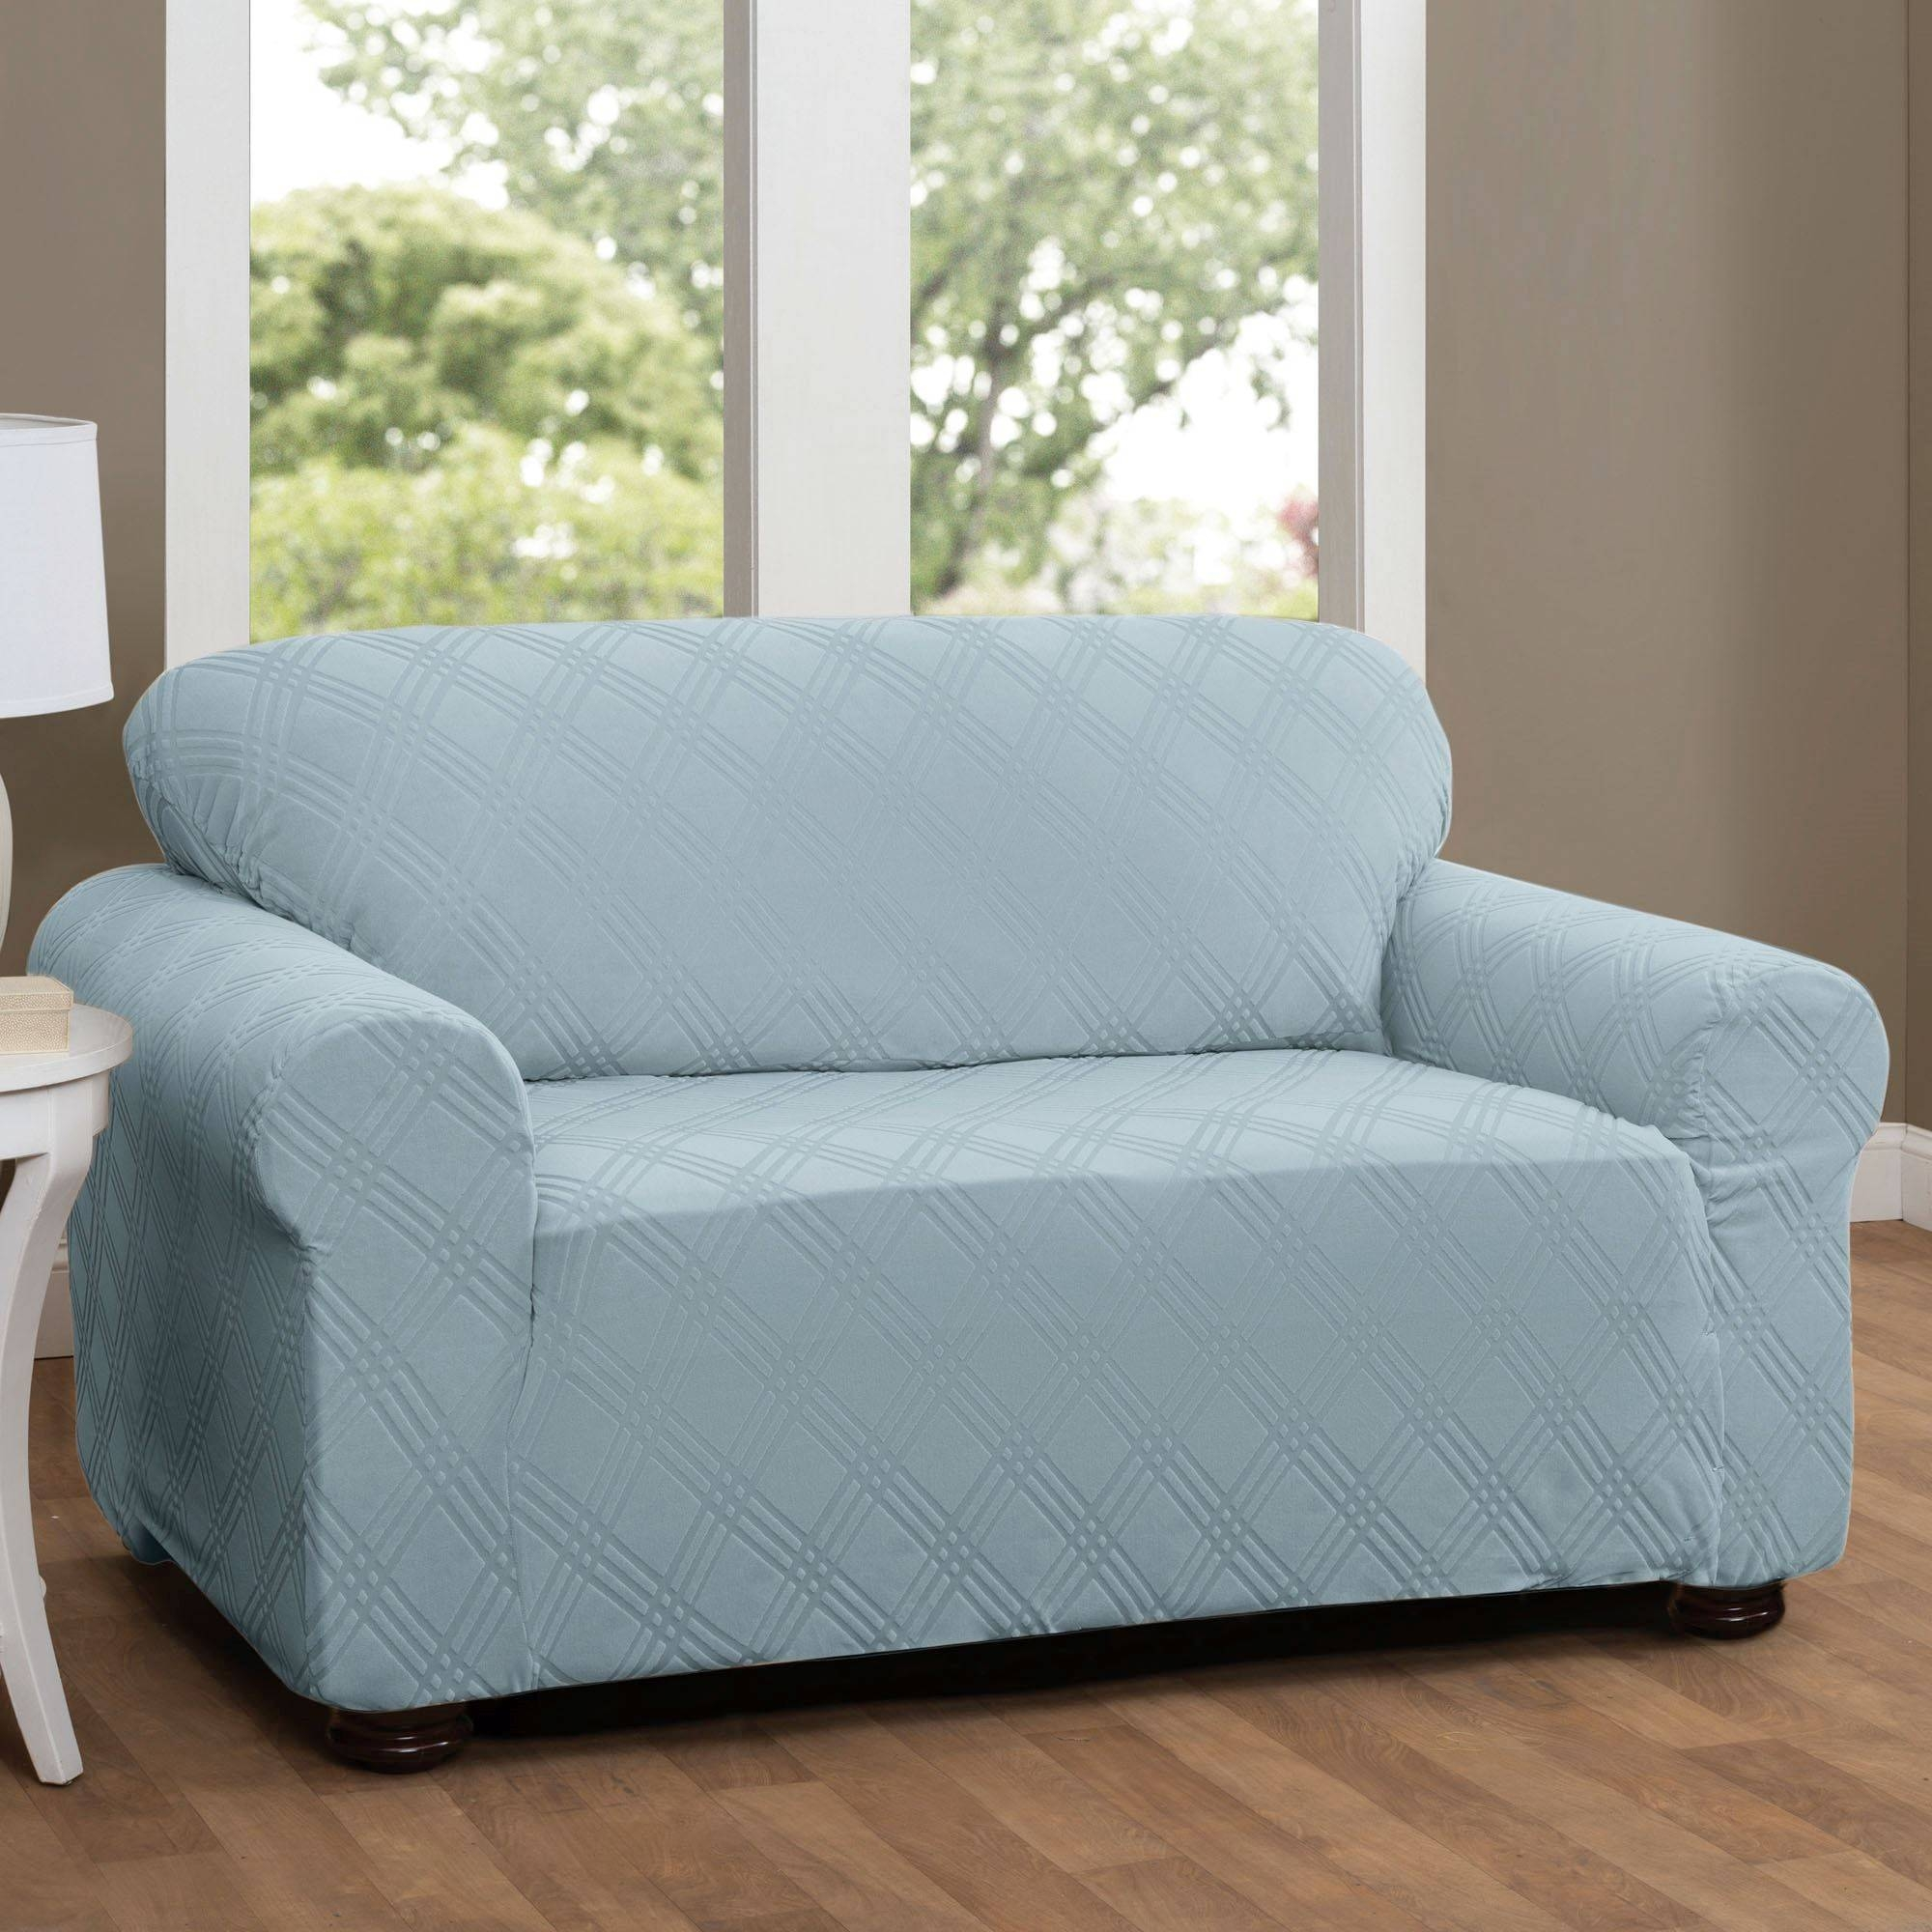 Double Diamond Stretch Loveseat Slipcovers in Stretch Slipcovers For Sofas (Image 3 of 15)